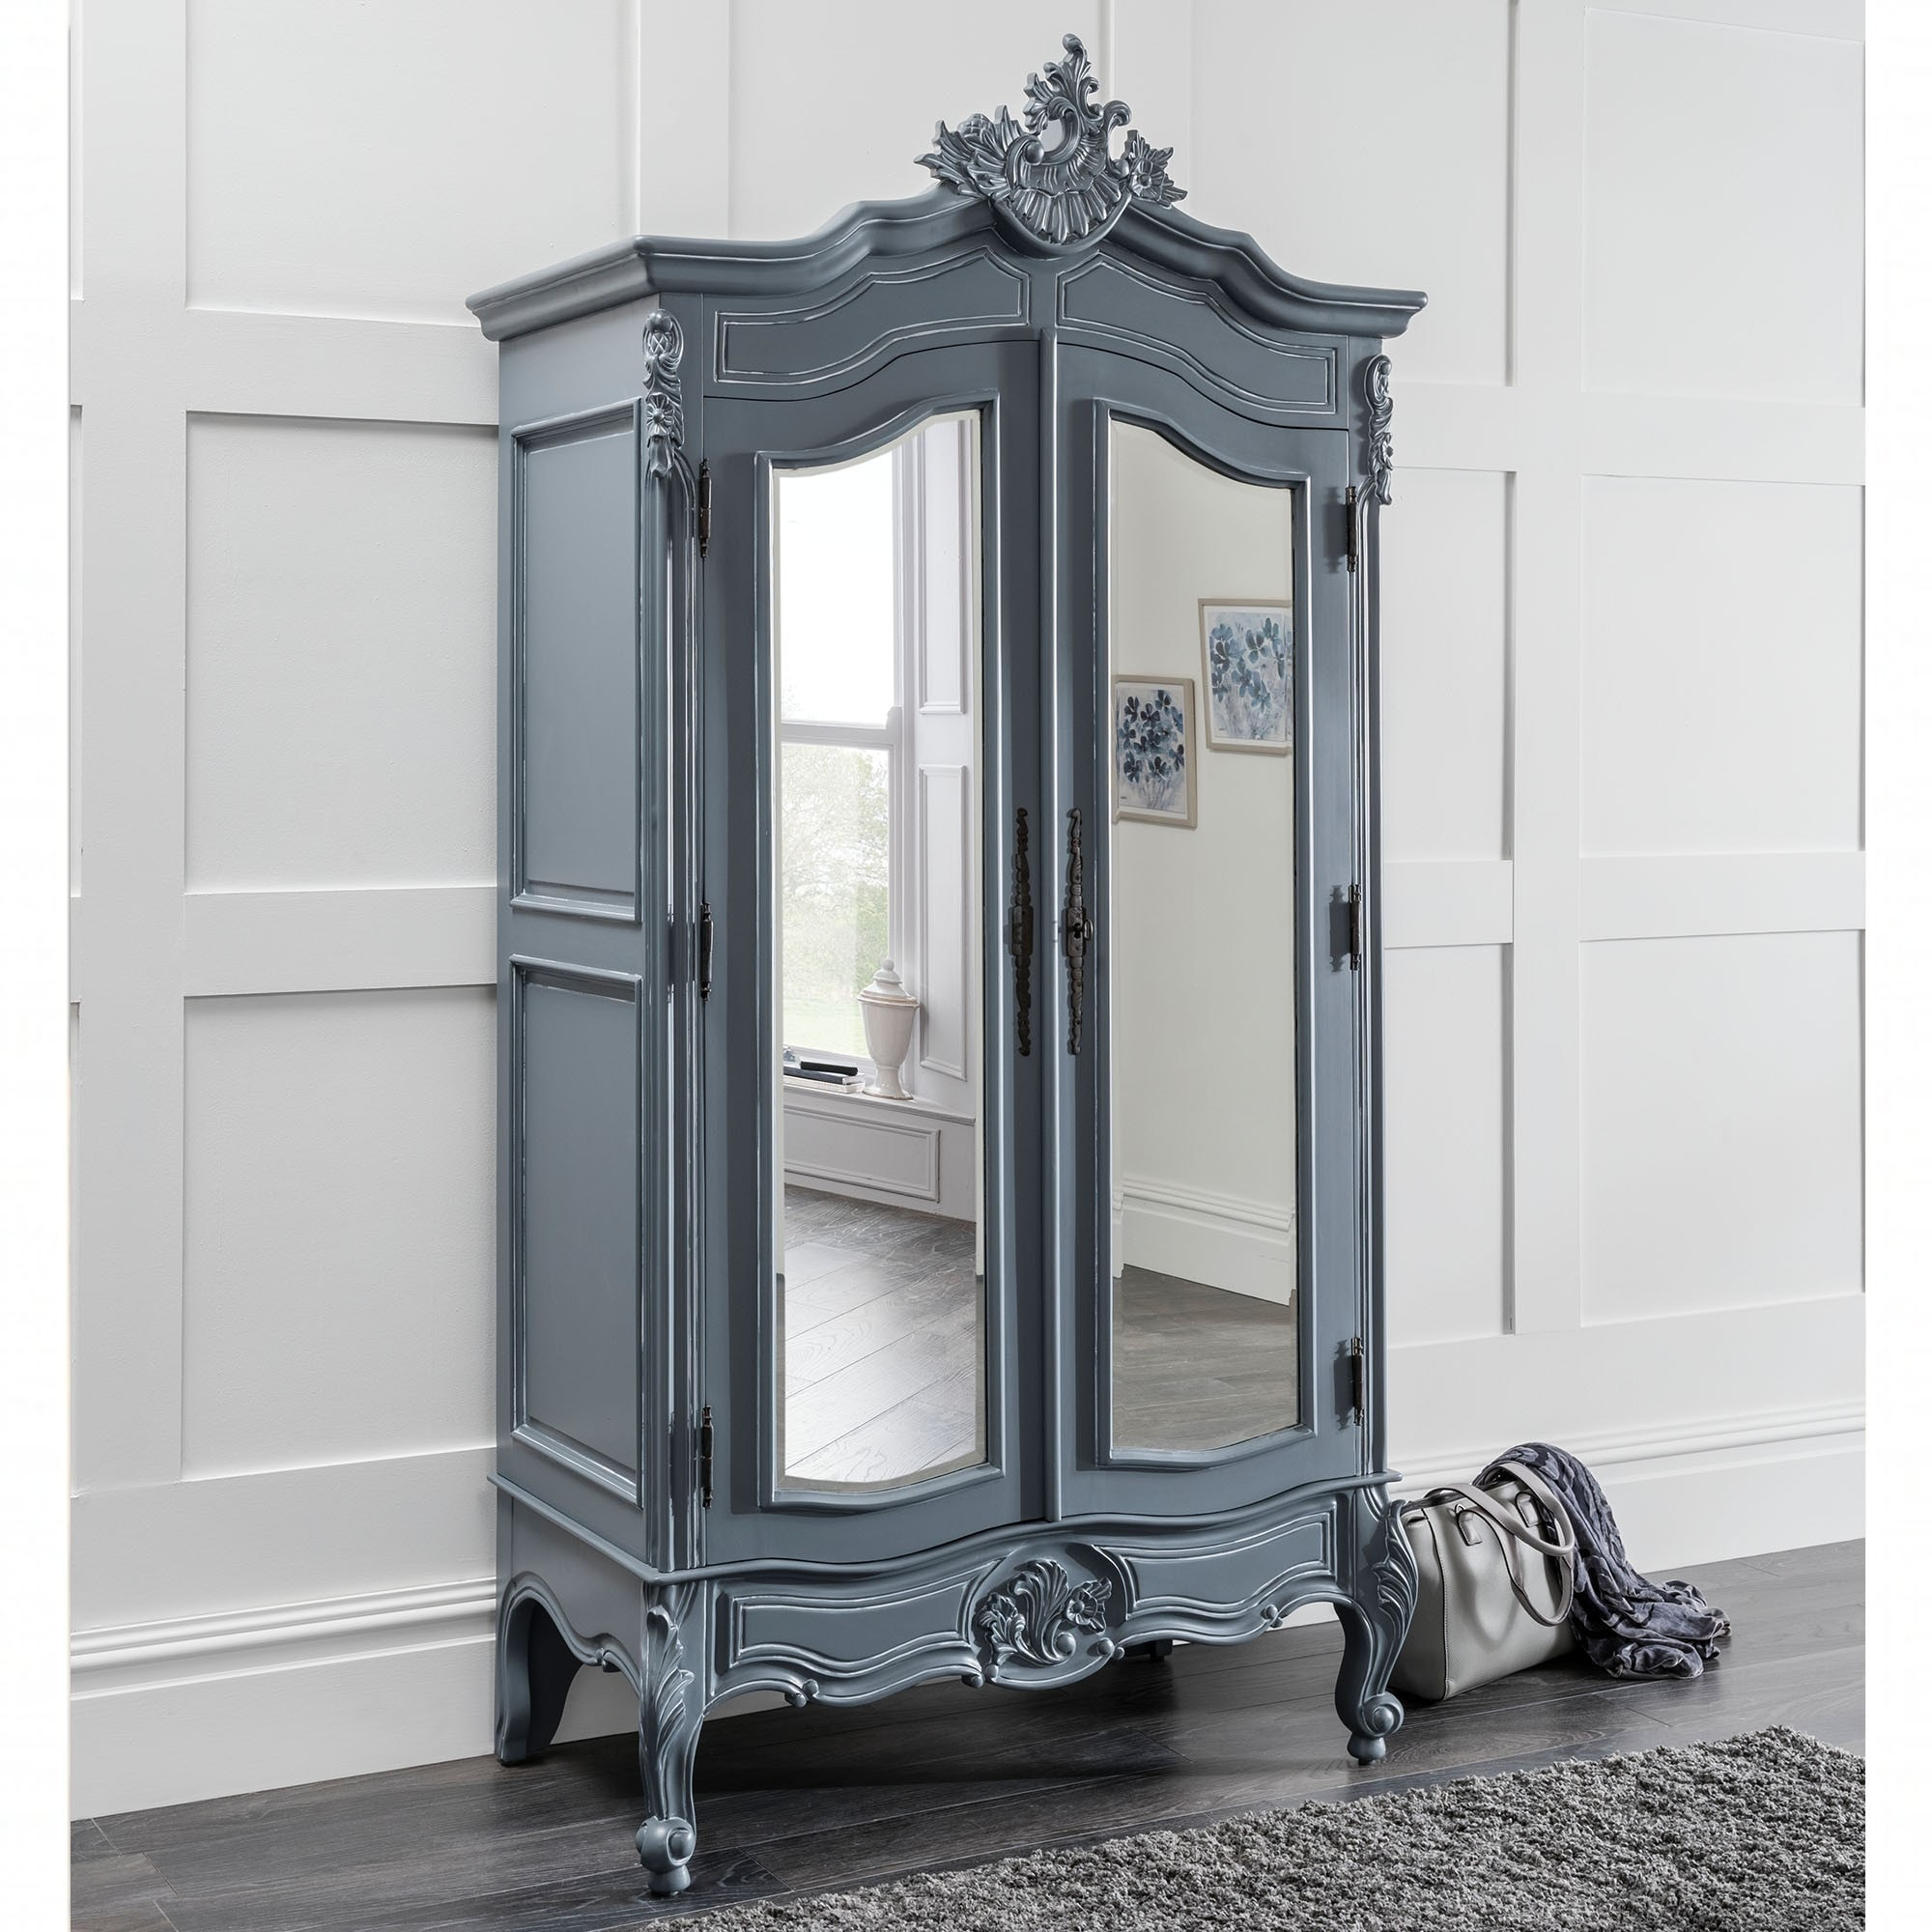 Chloe Antique French Style Wardrobe Grey Furniture At Homesdirect365